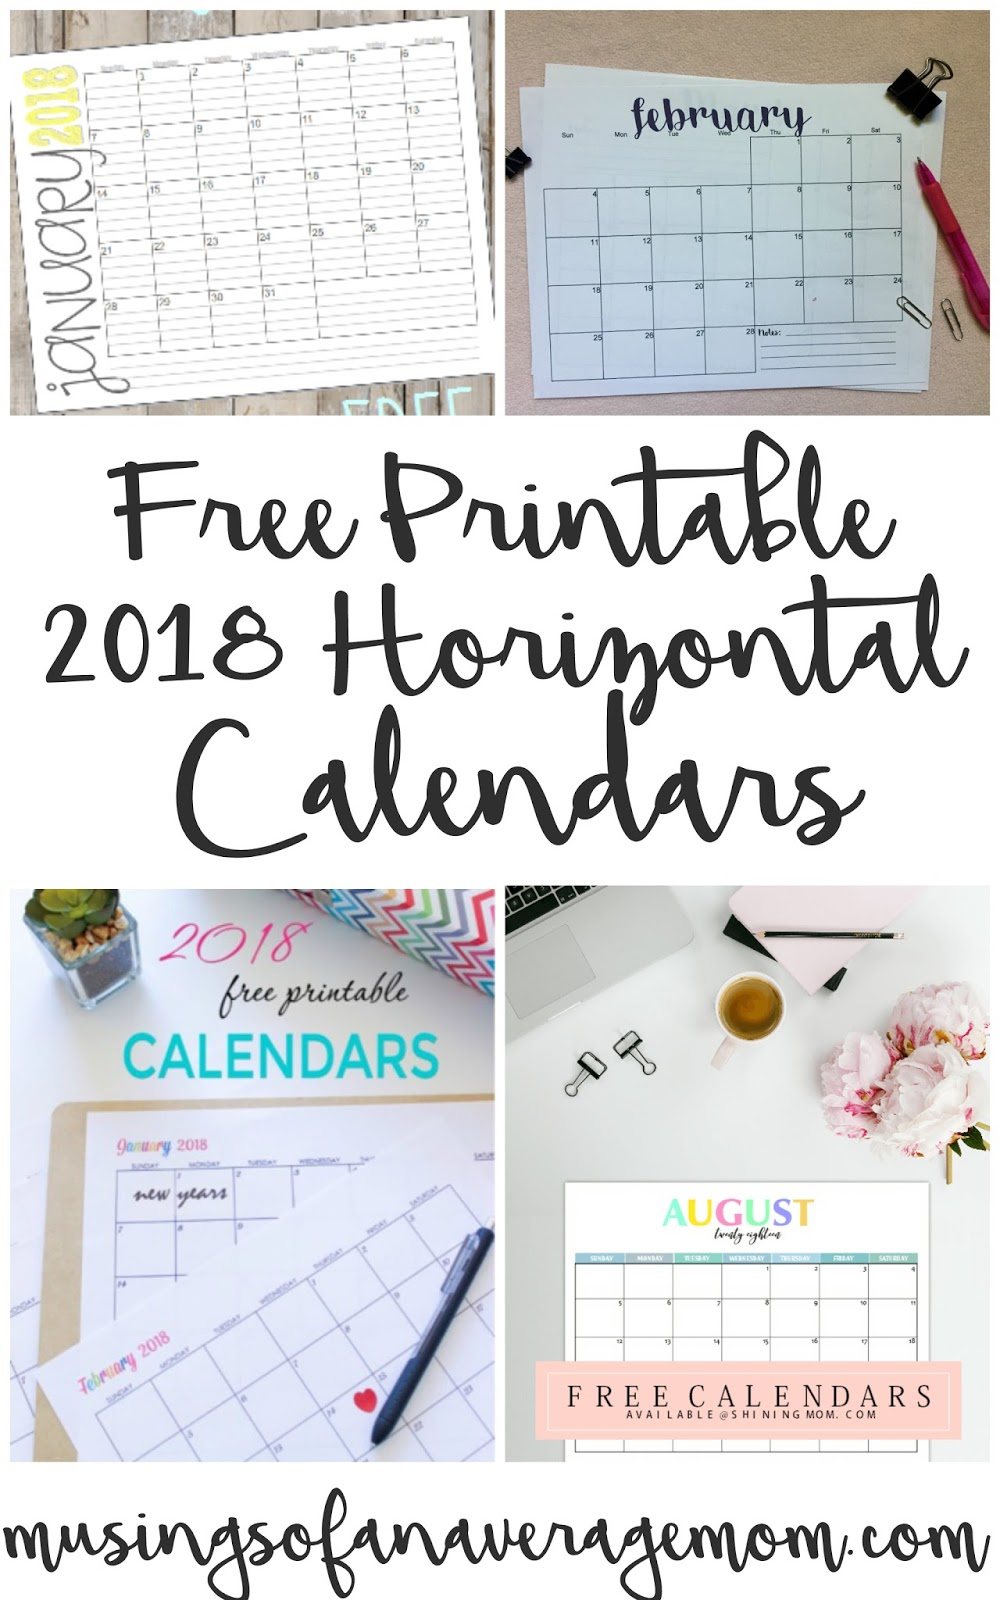 Musings Of An Average Mom 2018 Calendars